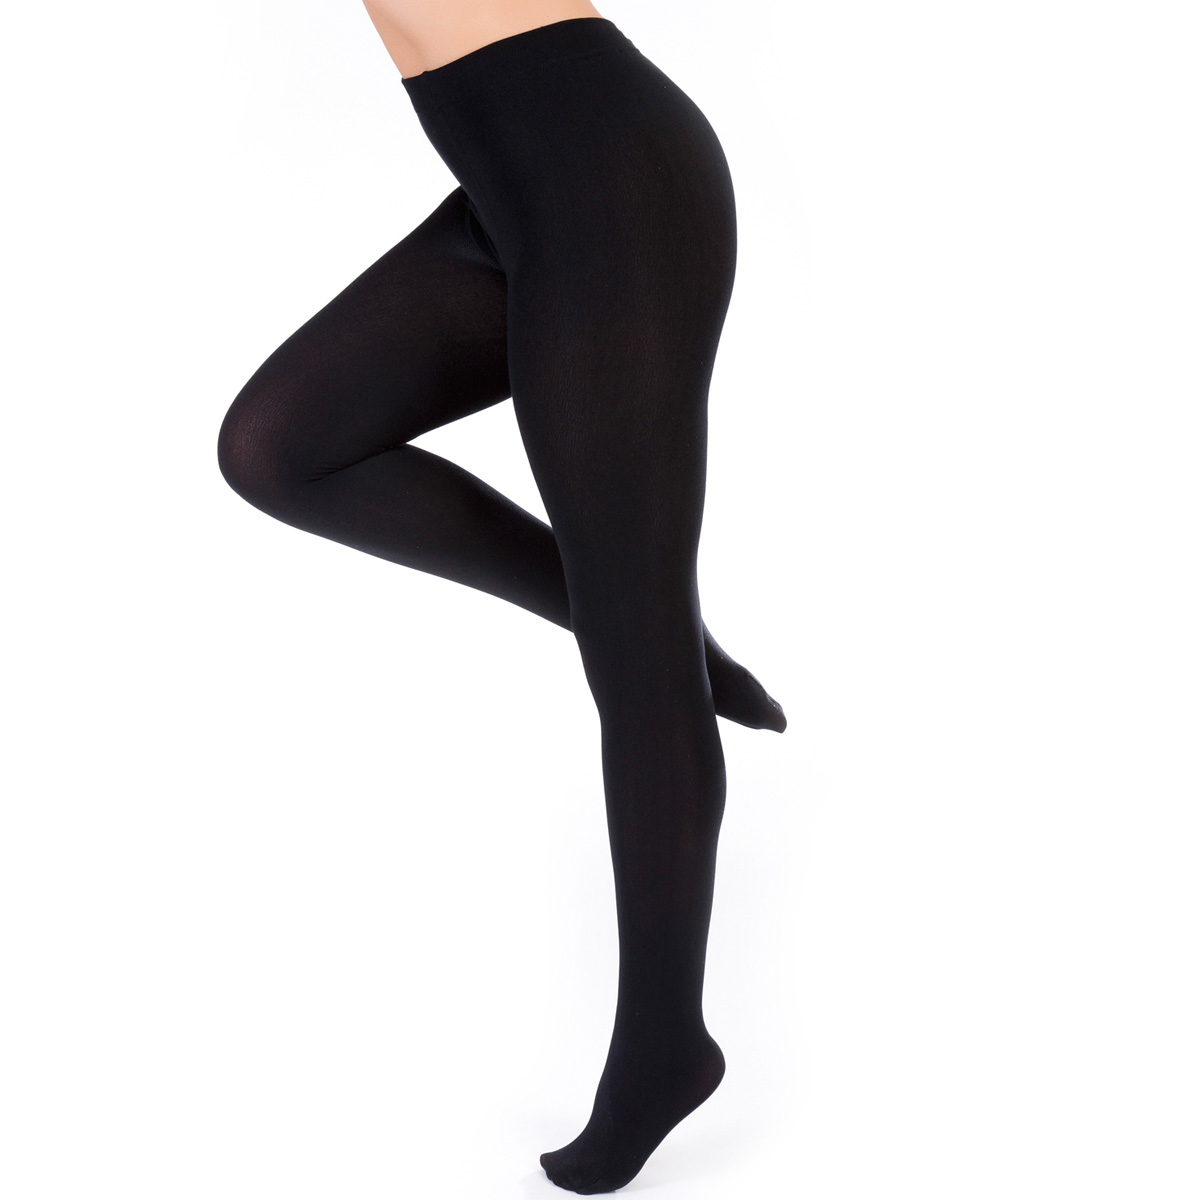 Short on length, but long on fit, function, and comfort, cropped women's tights are the go-to work-out pants to accompany your gym style. Versatile enough to wear to an outdoor lunch or training session, capri leggings are your workout's best friend.